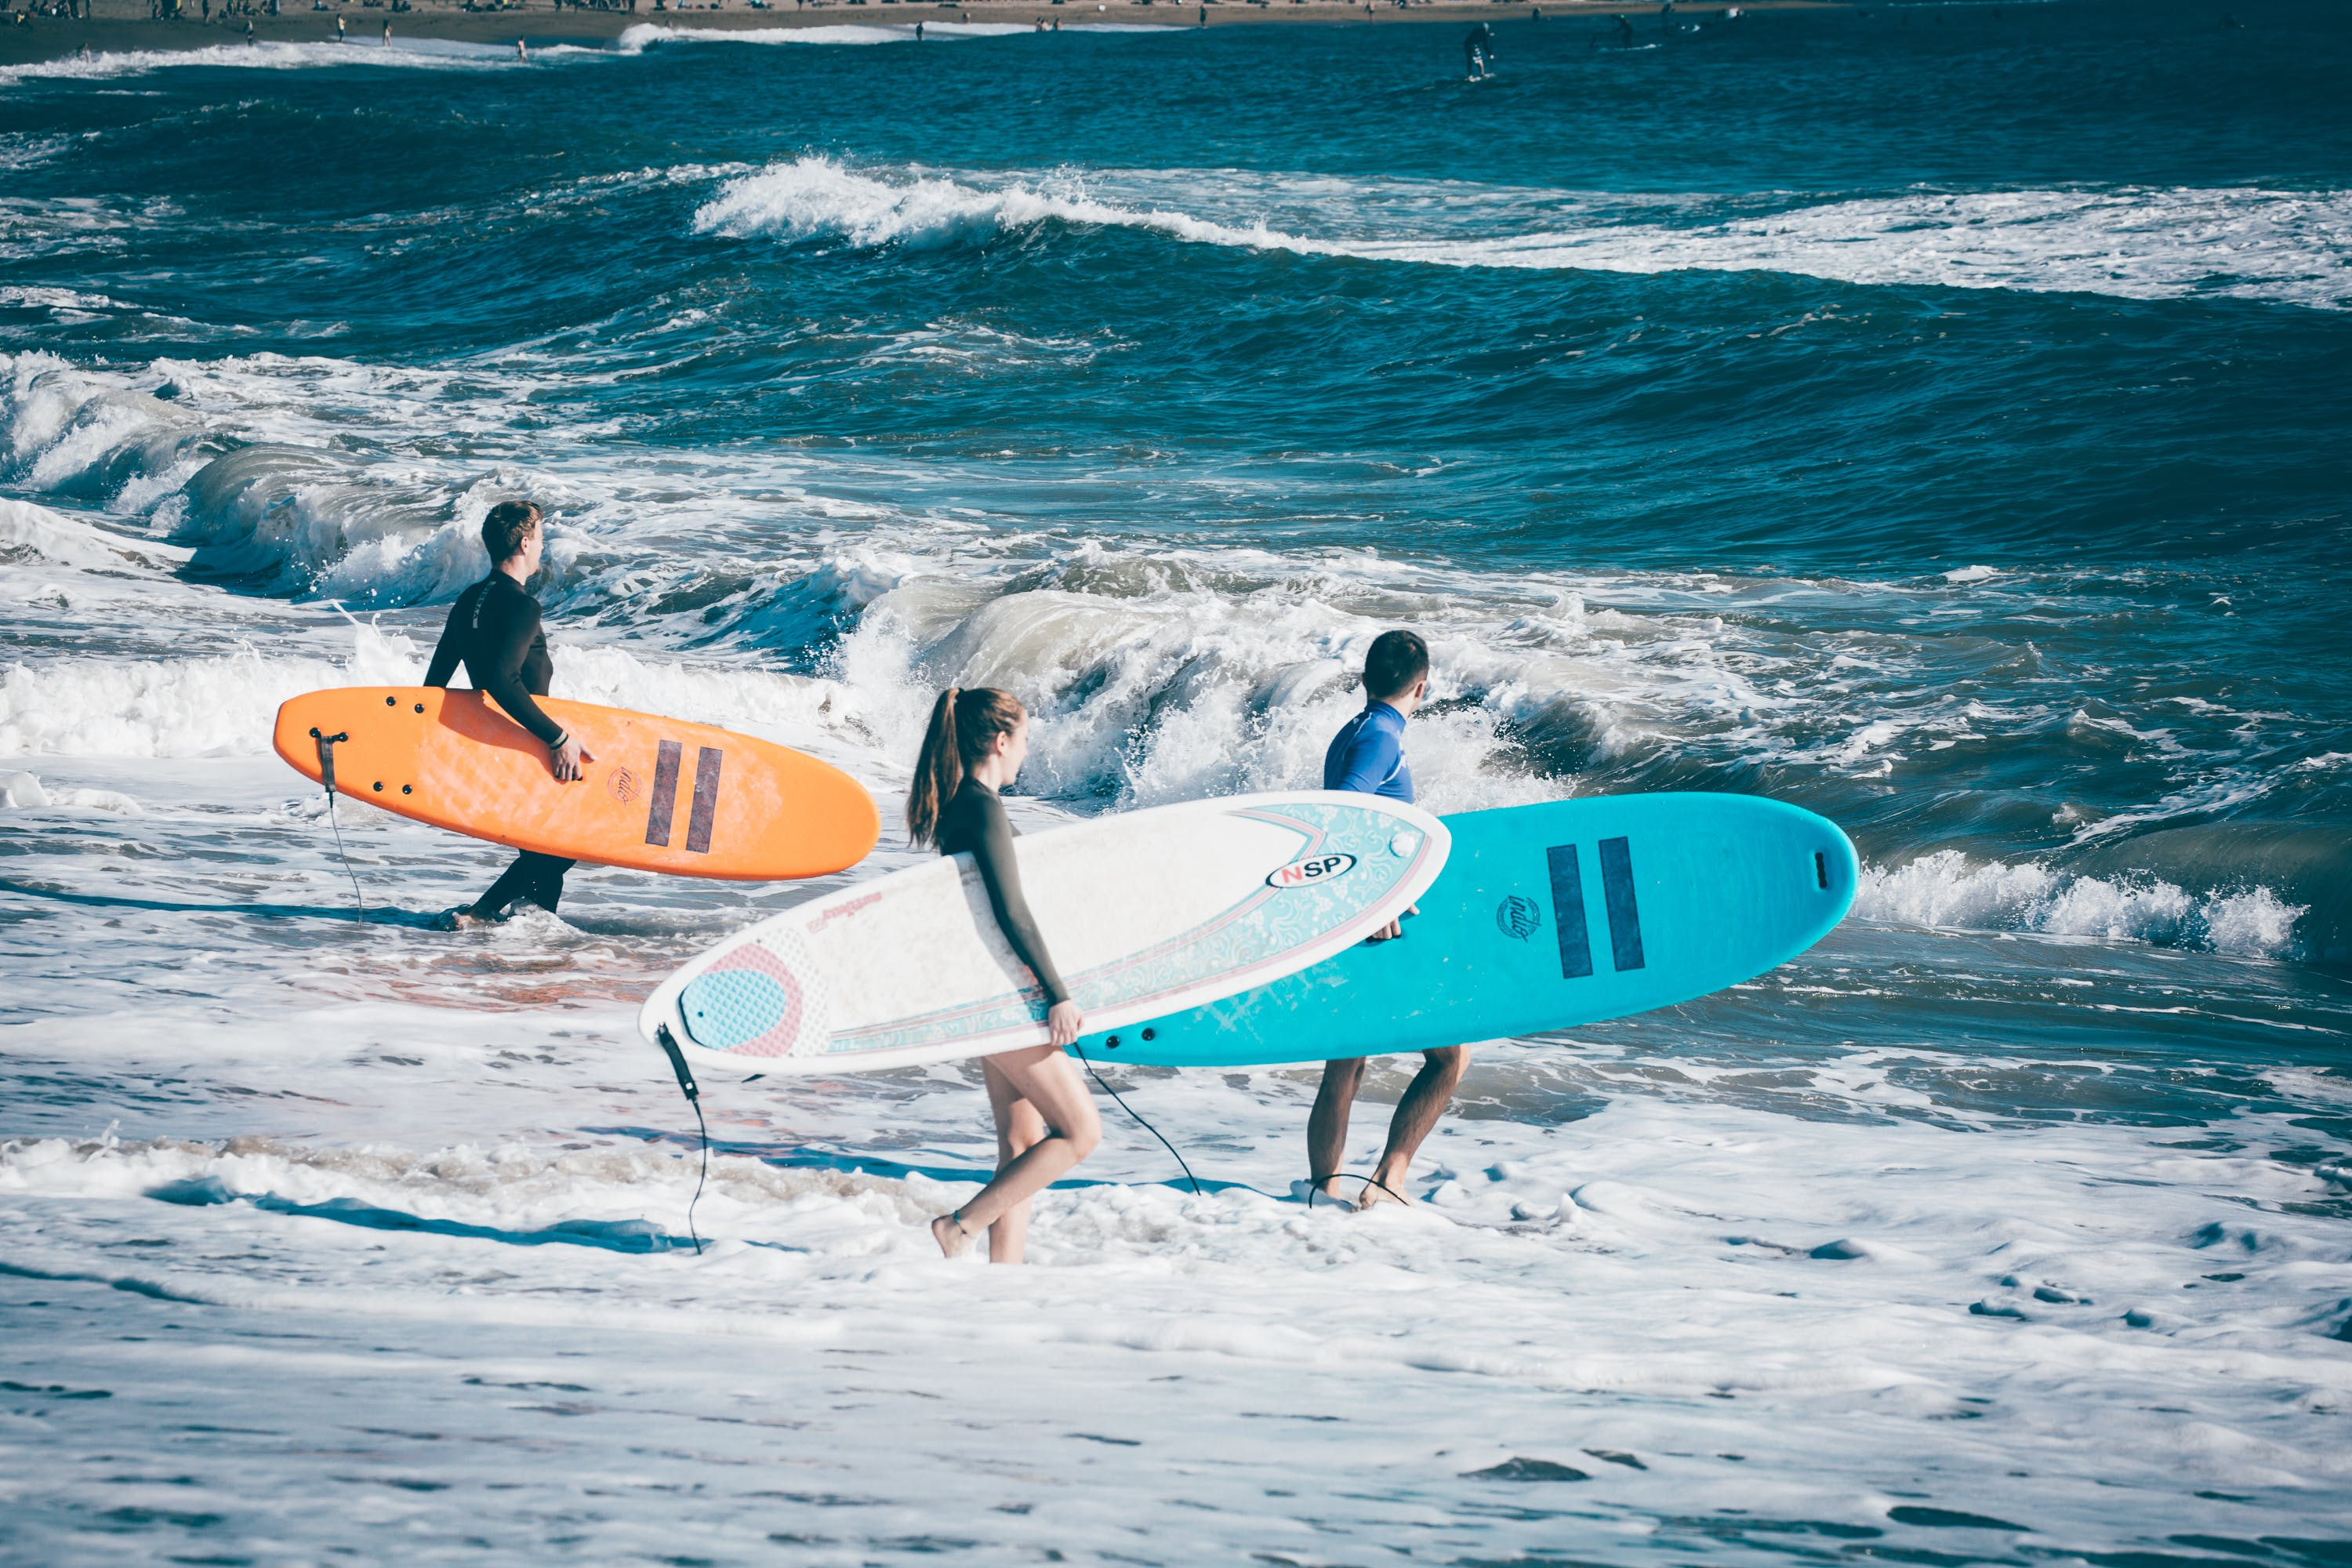 Three Person About to Surf